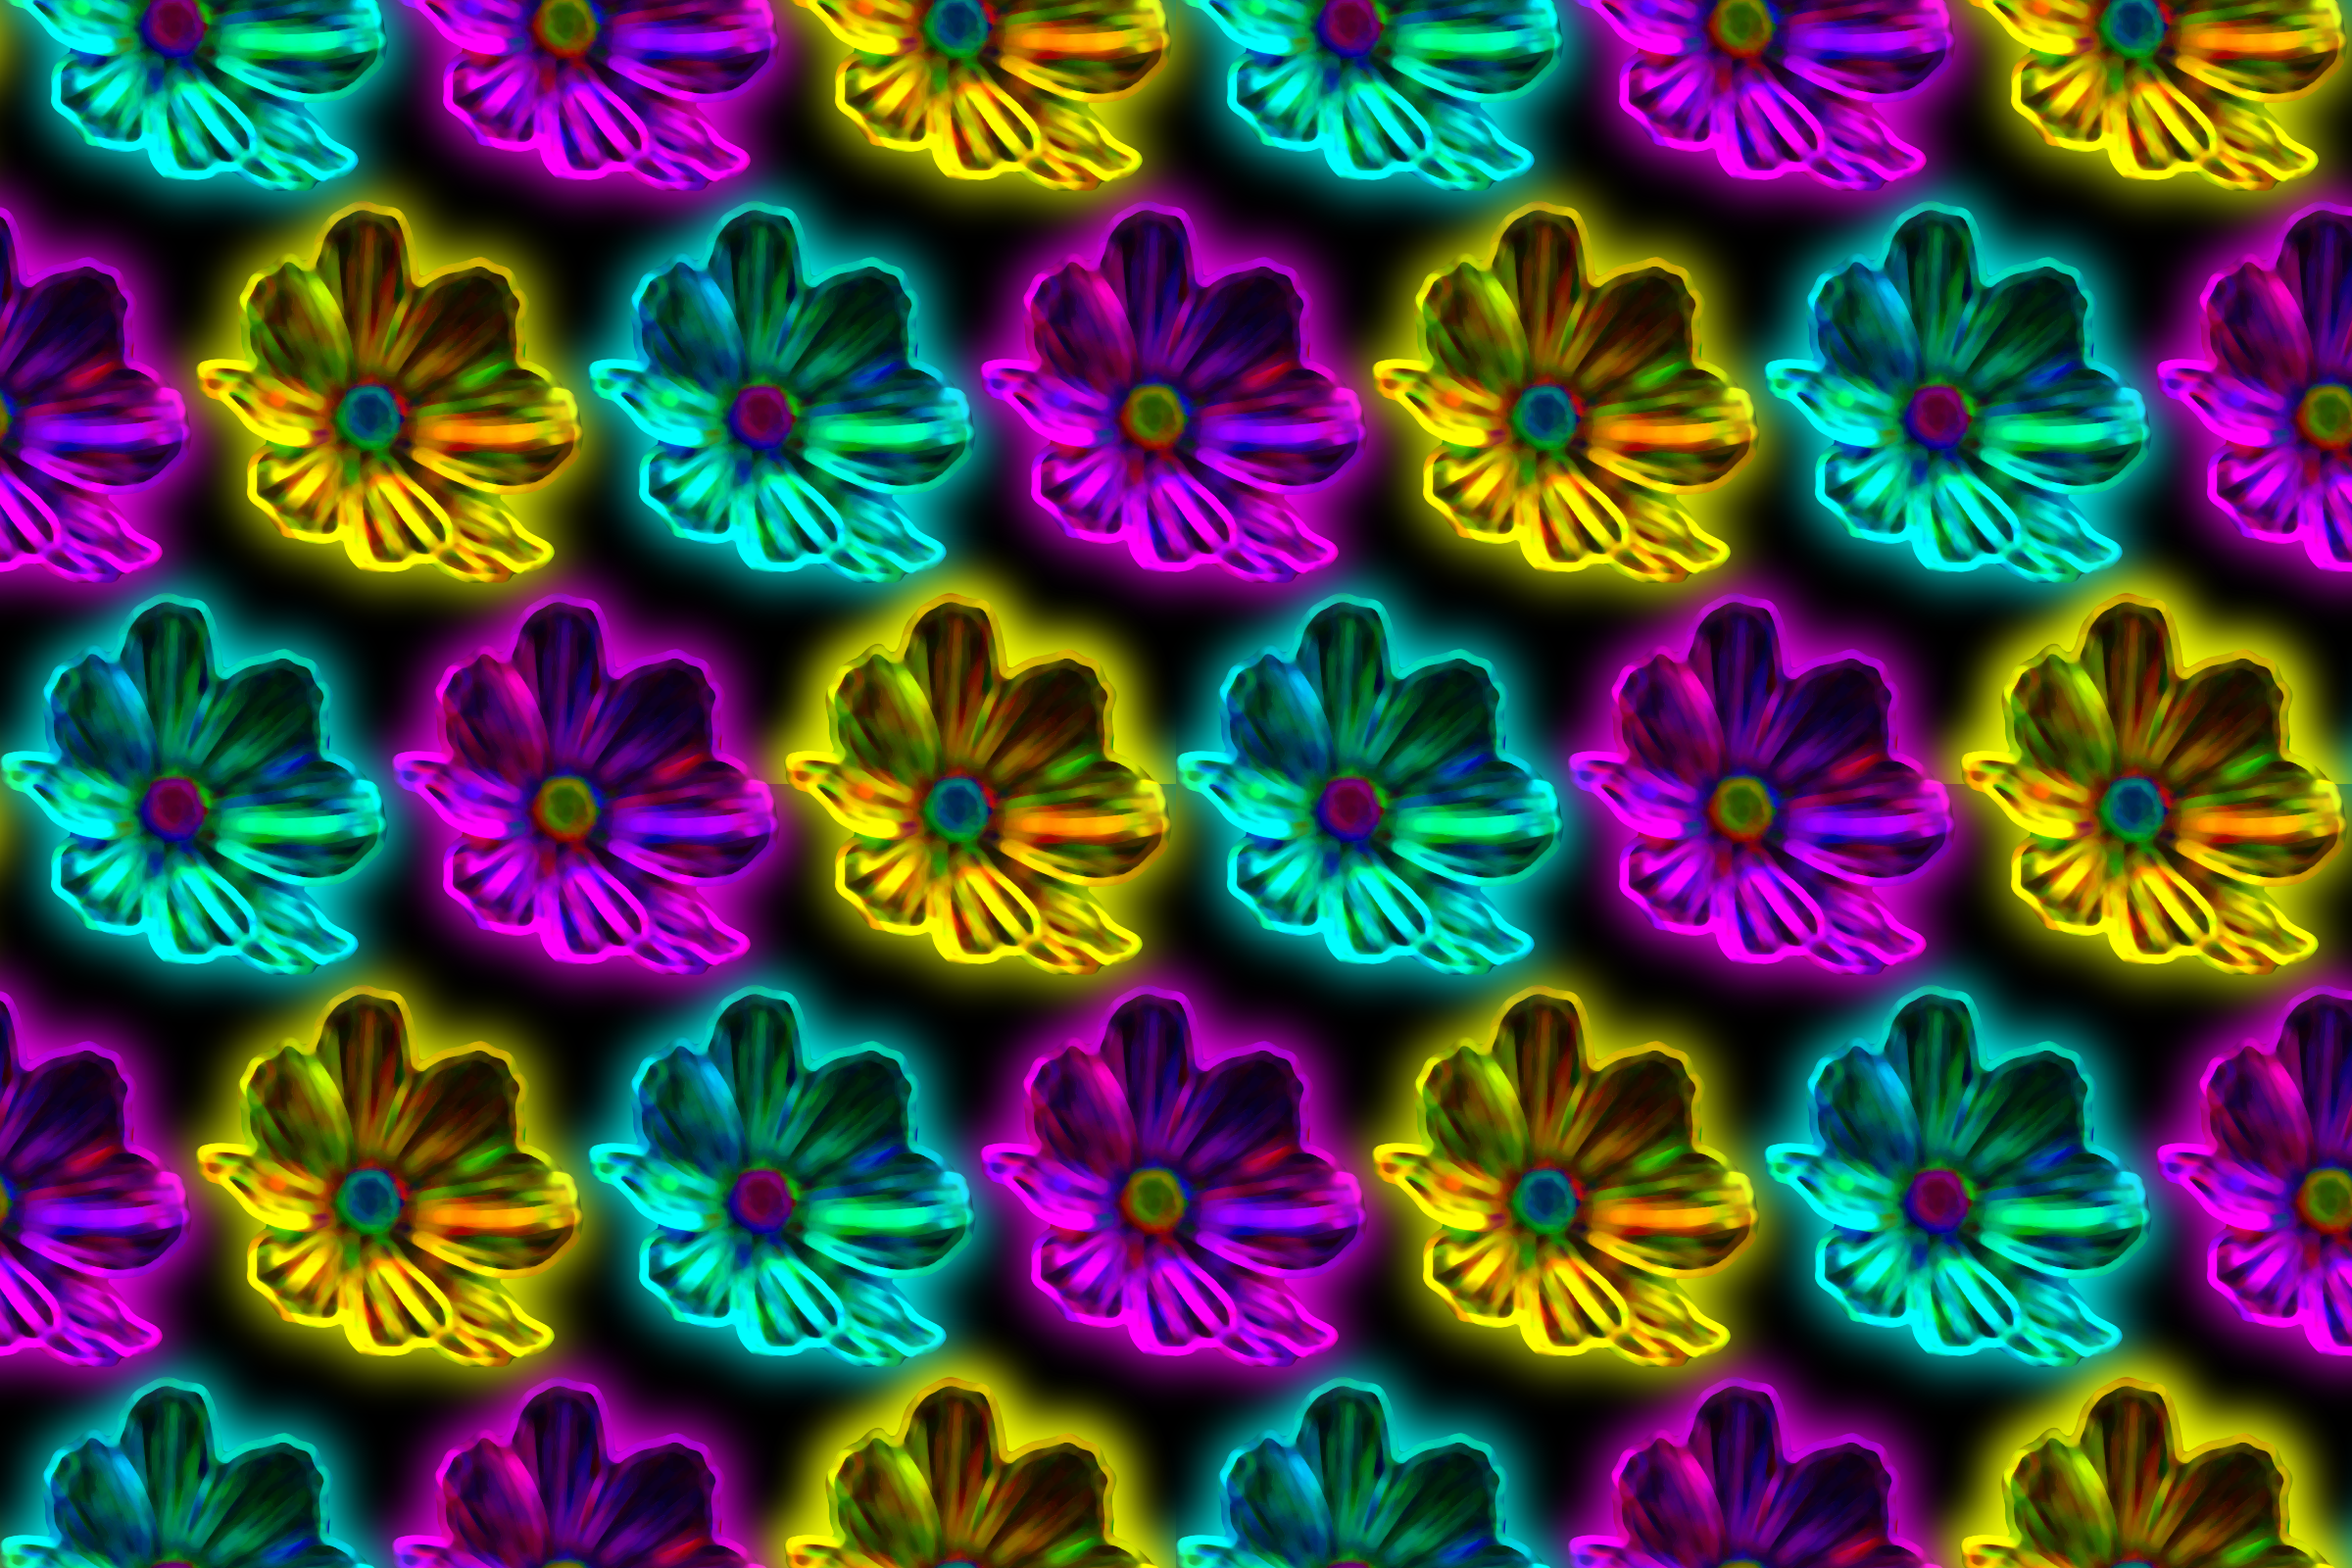 Neon flower background 2 by Firkin